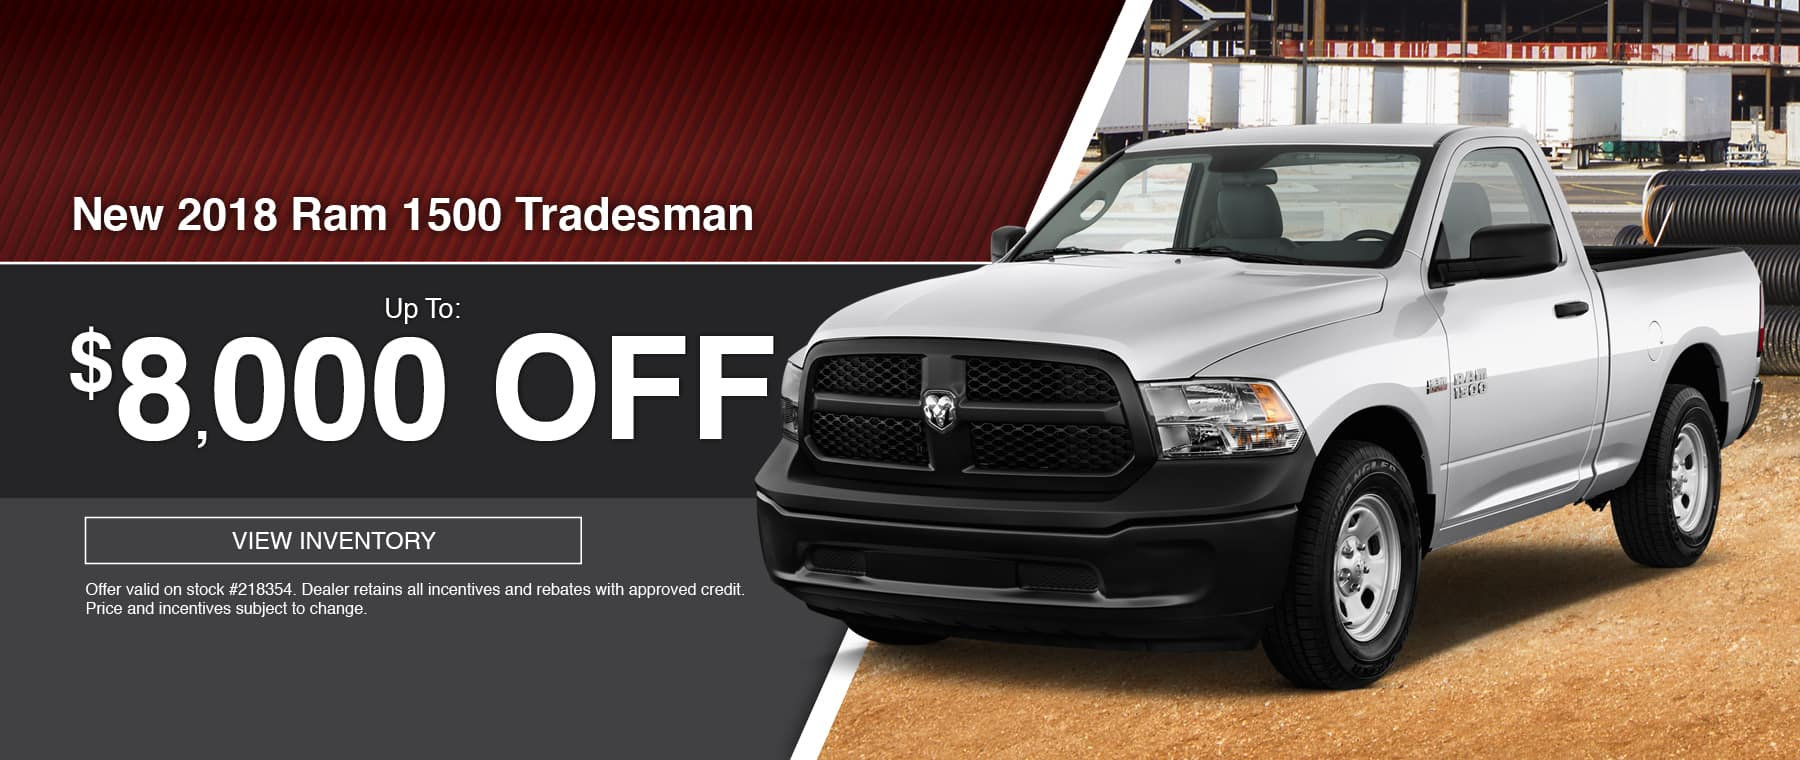 2018 RAM 1500 Tradesman Special at Thomson RAM in Thomson, GA